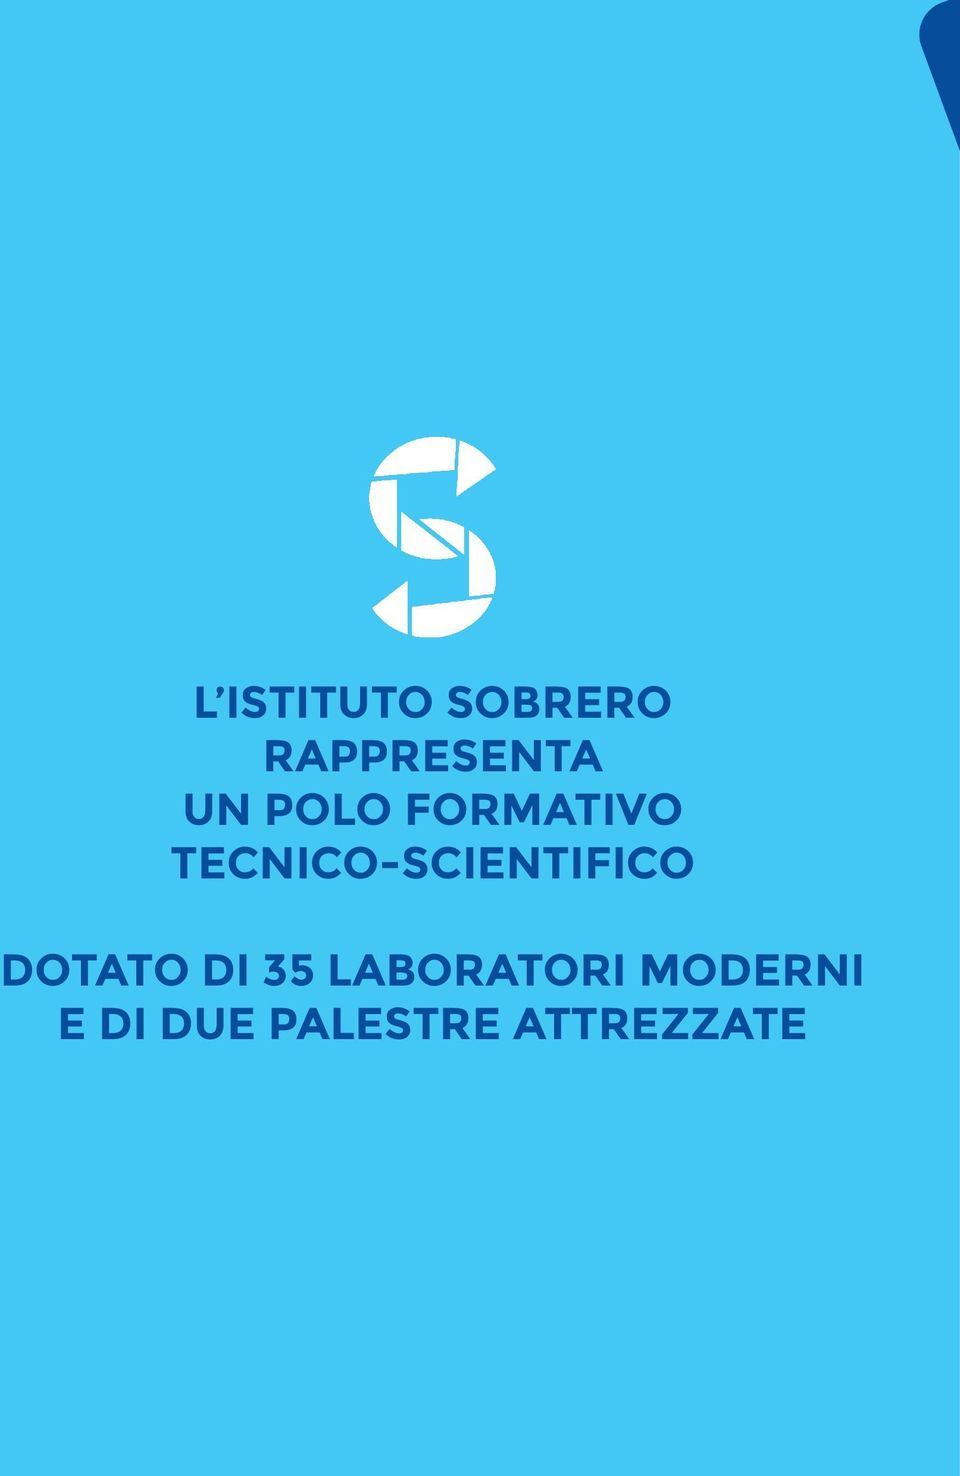 TECNICO-SCIENTIFICO DOTATO DI 35